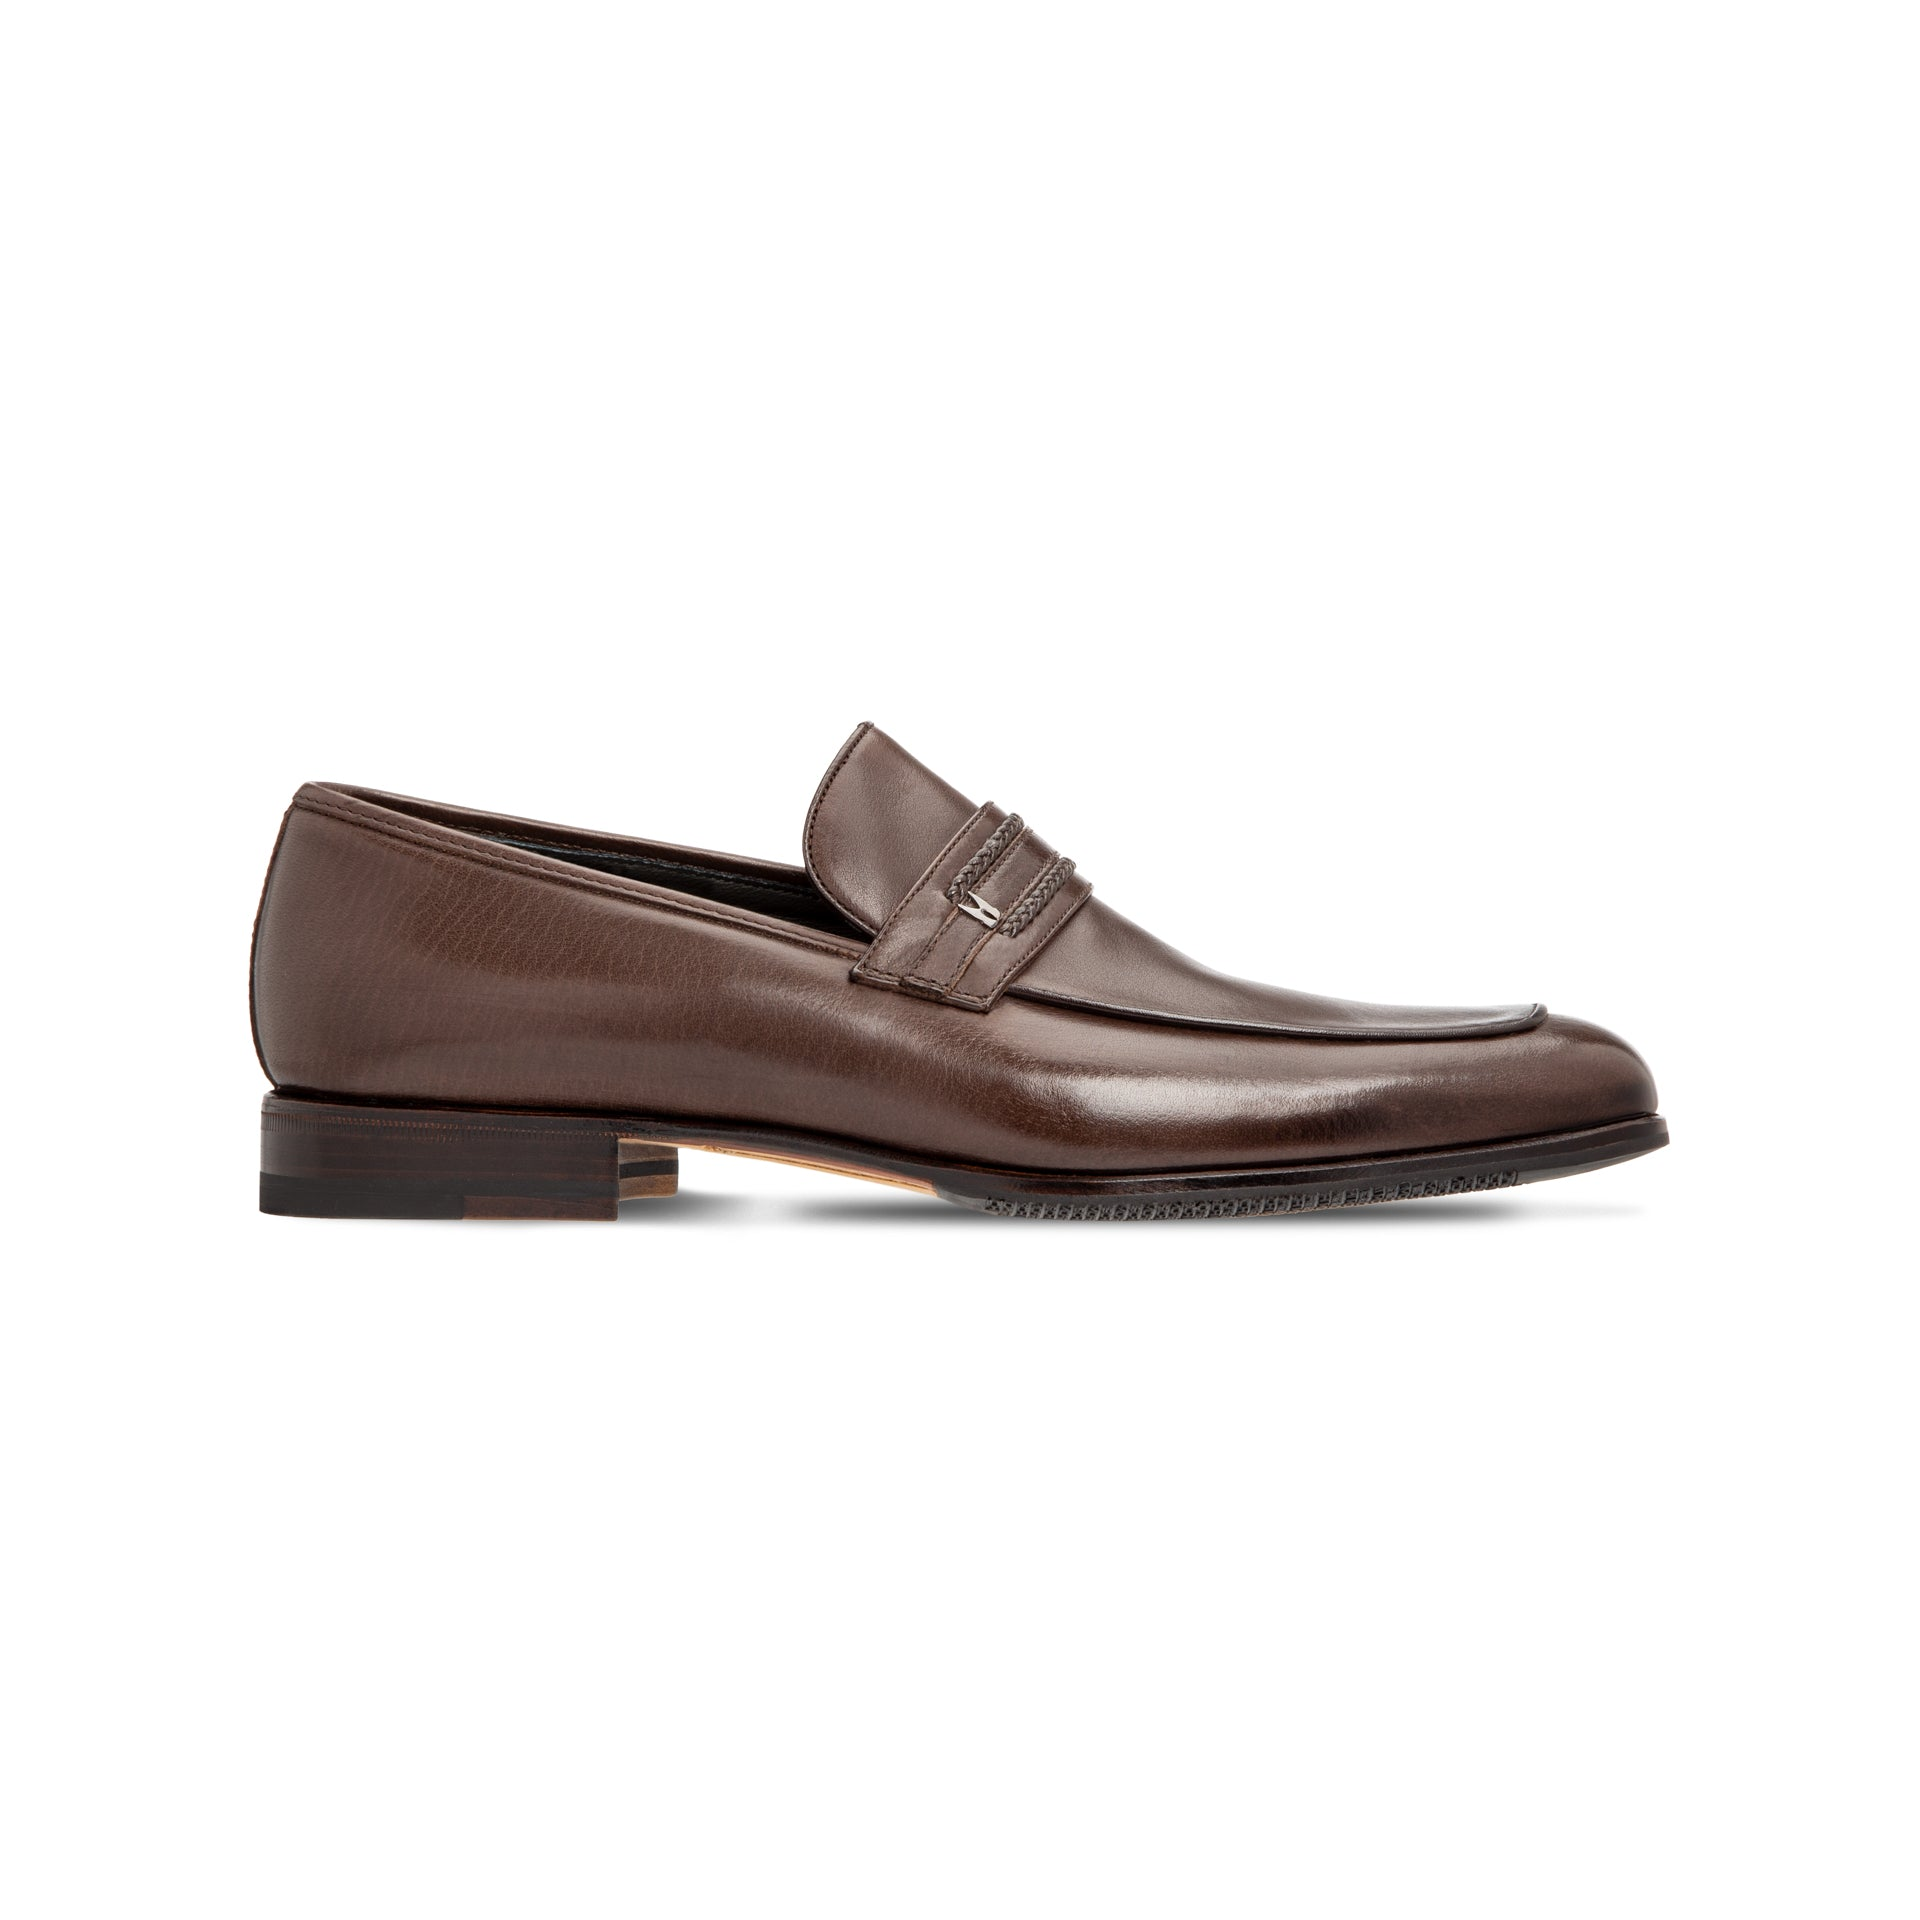 Dark brown buffalo leather loafer shoes